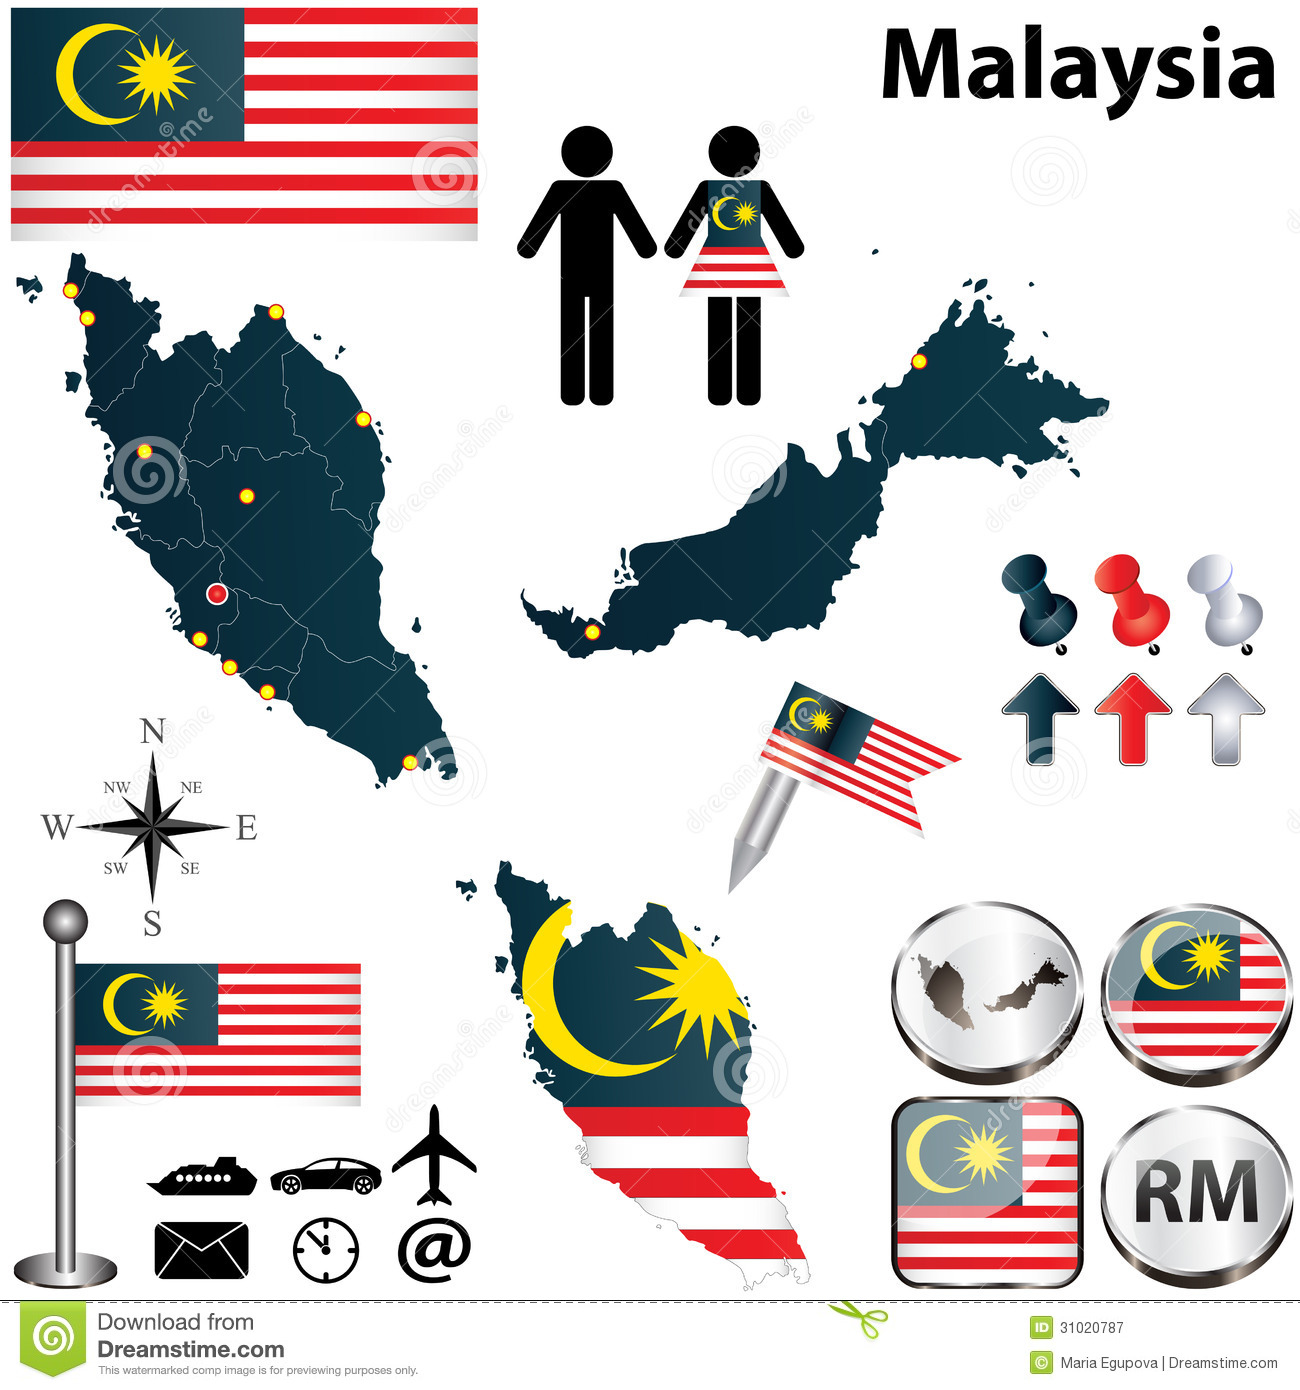 Malaysia Country: Map Of Malaysia Stock Vector. Illustration Of Land, State